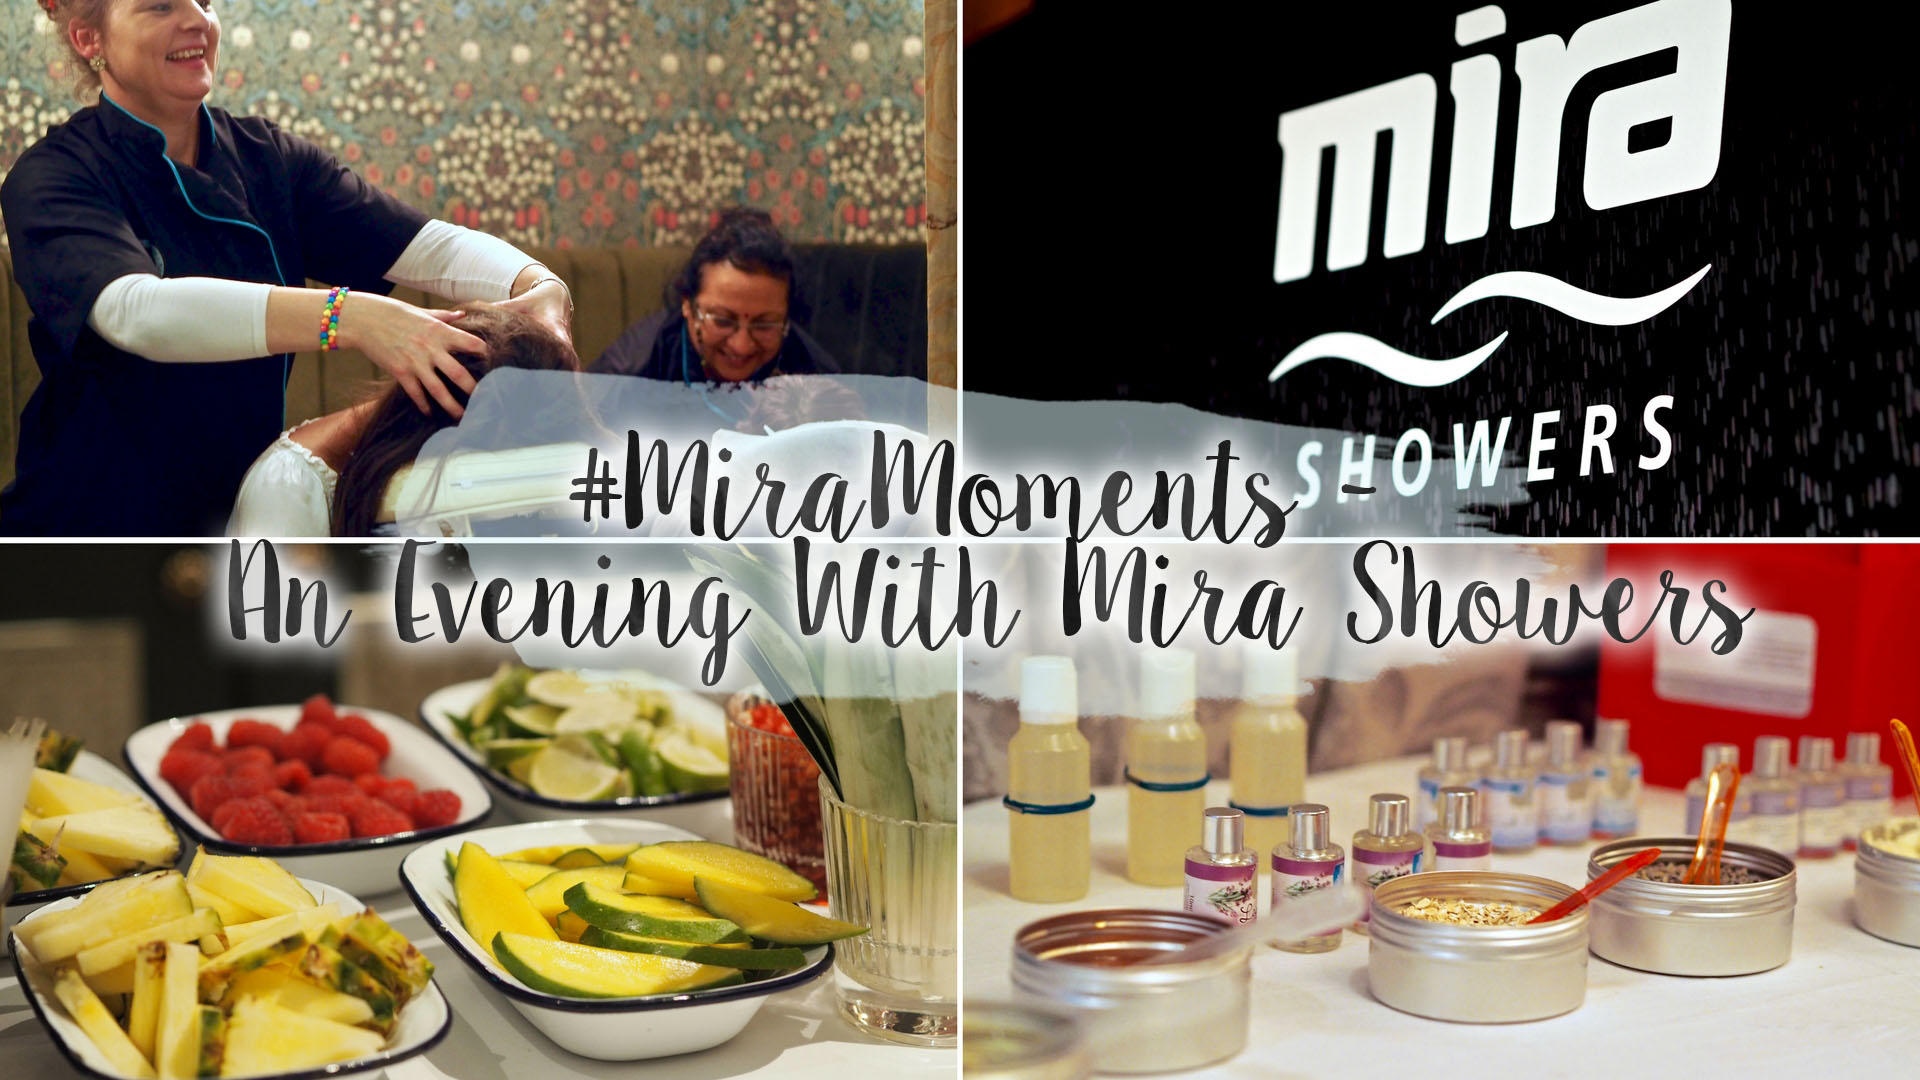 #MiraMoments - An Evening With Mira Showers || Life Lately